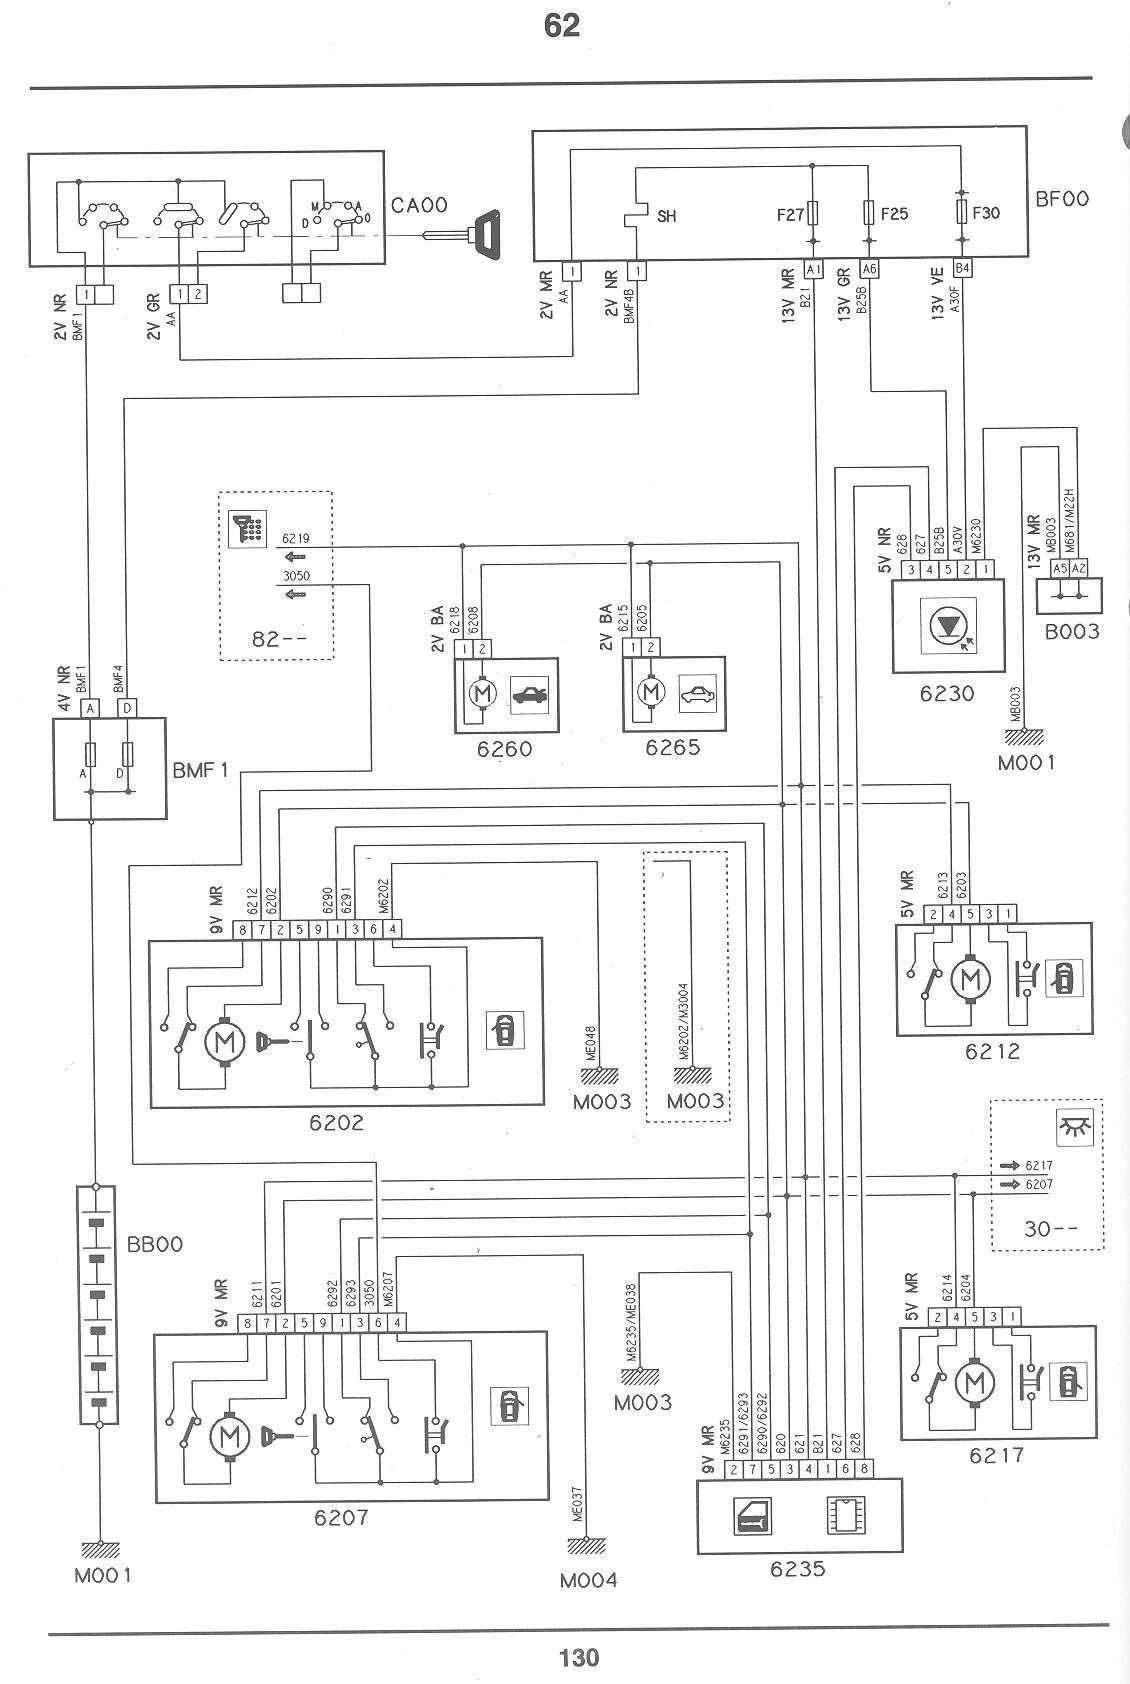 DIAGRAM] Citroen Xsara Picasso 2002 Haynes Wiring Diagram HD Quality -  PURPLEAGENCY.KINGGO.FR | Citroen Xsara Wiring Diagram Pdf |  | purpleagency kinggo fr